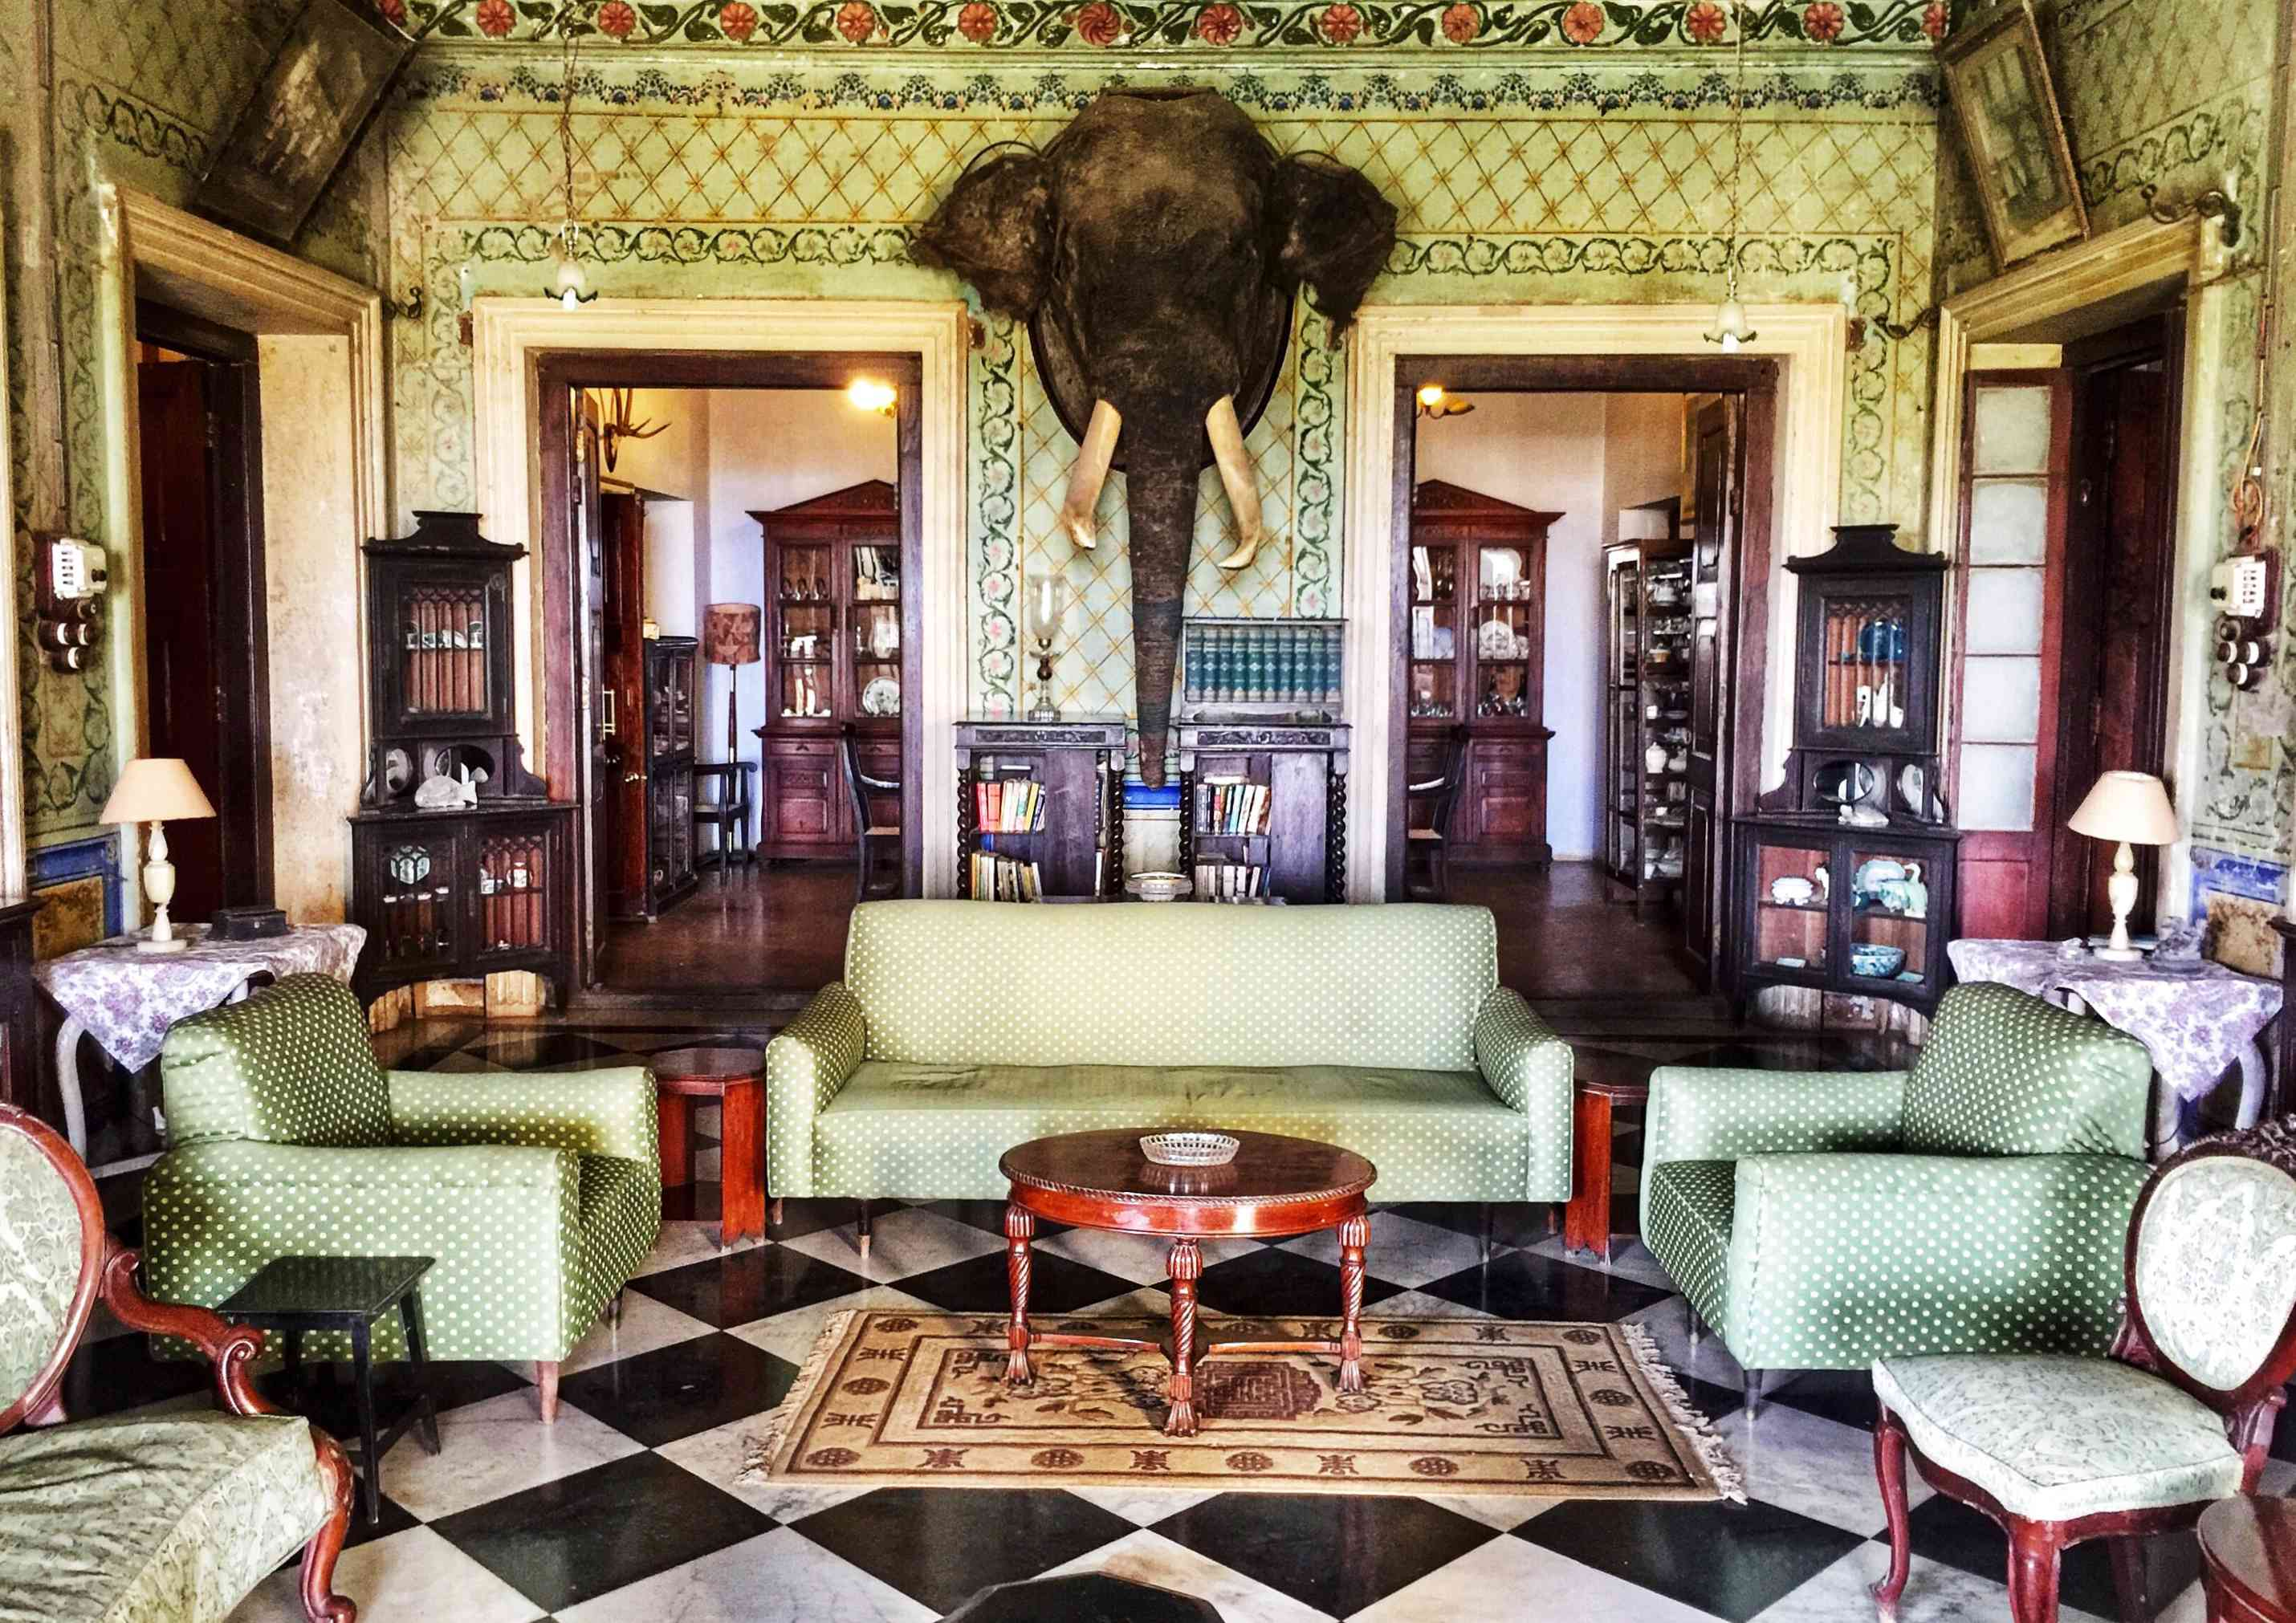 mounted elephant head in a heavily decorated green room